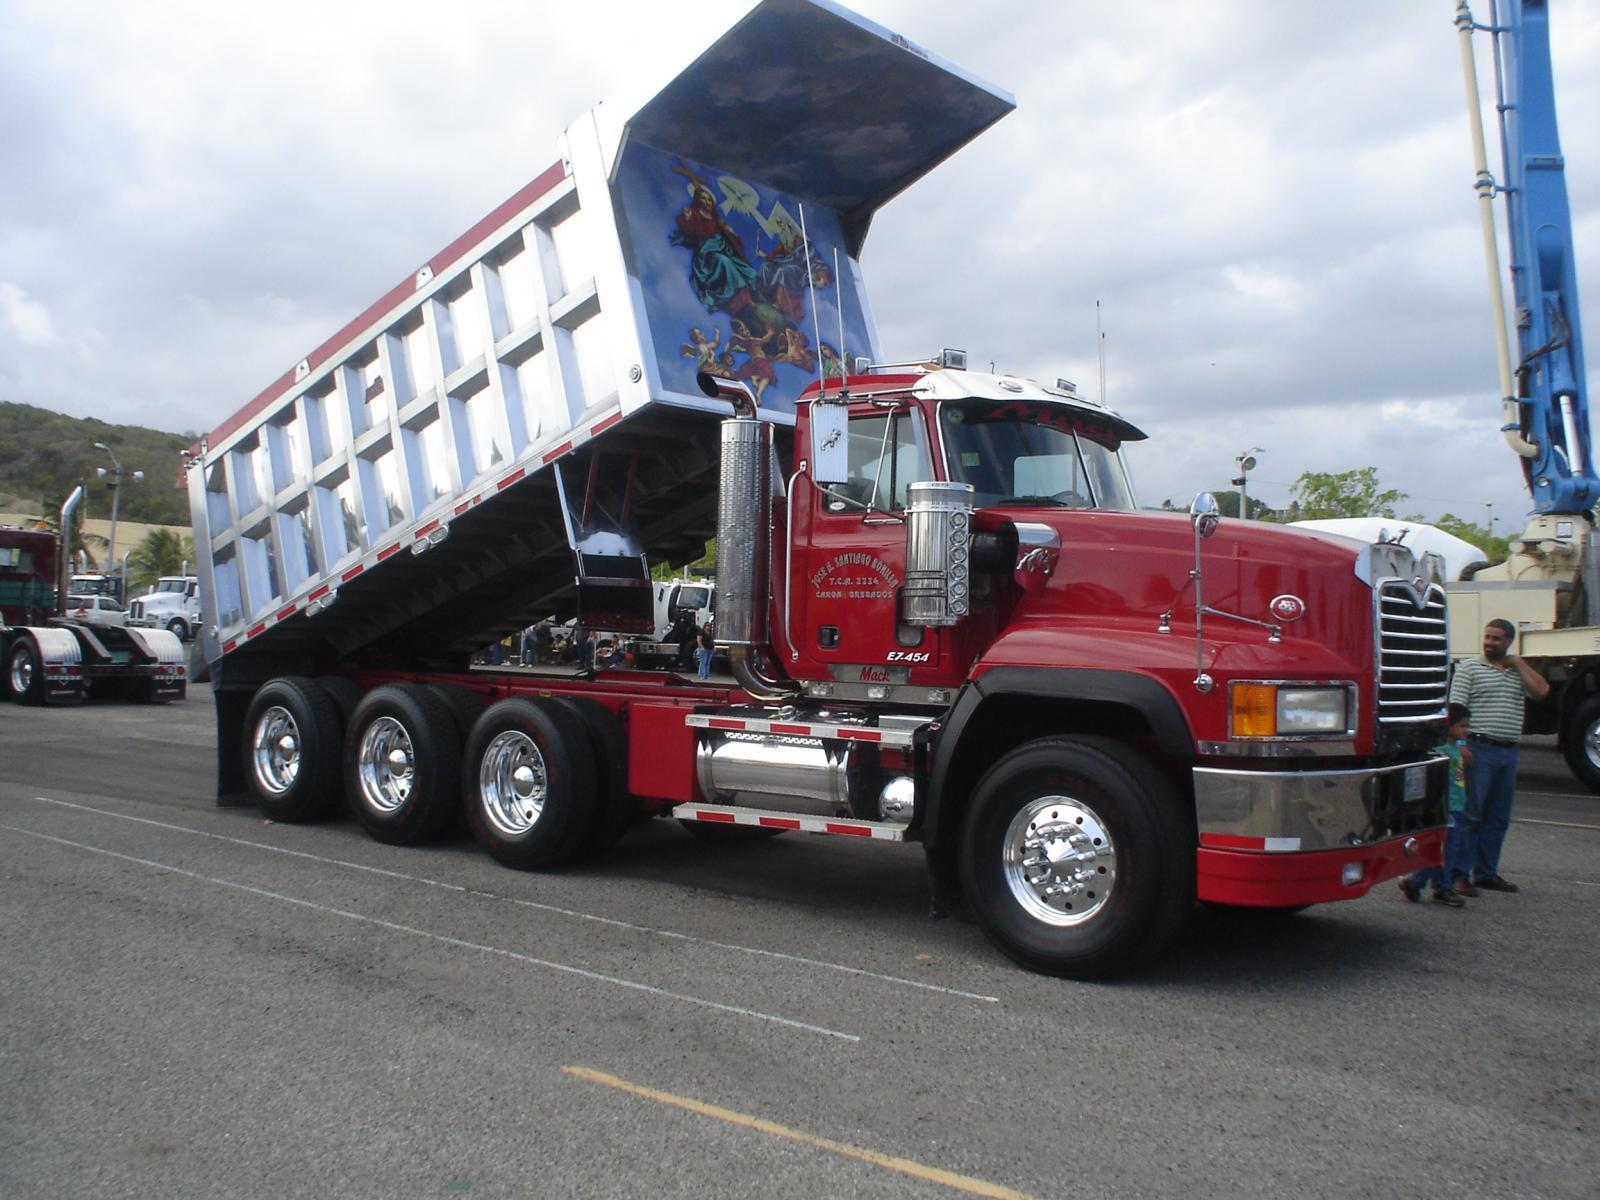 Big Mack Trucks : Dsc g bmt member s gallery click here to view